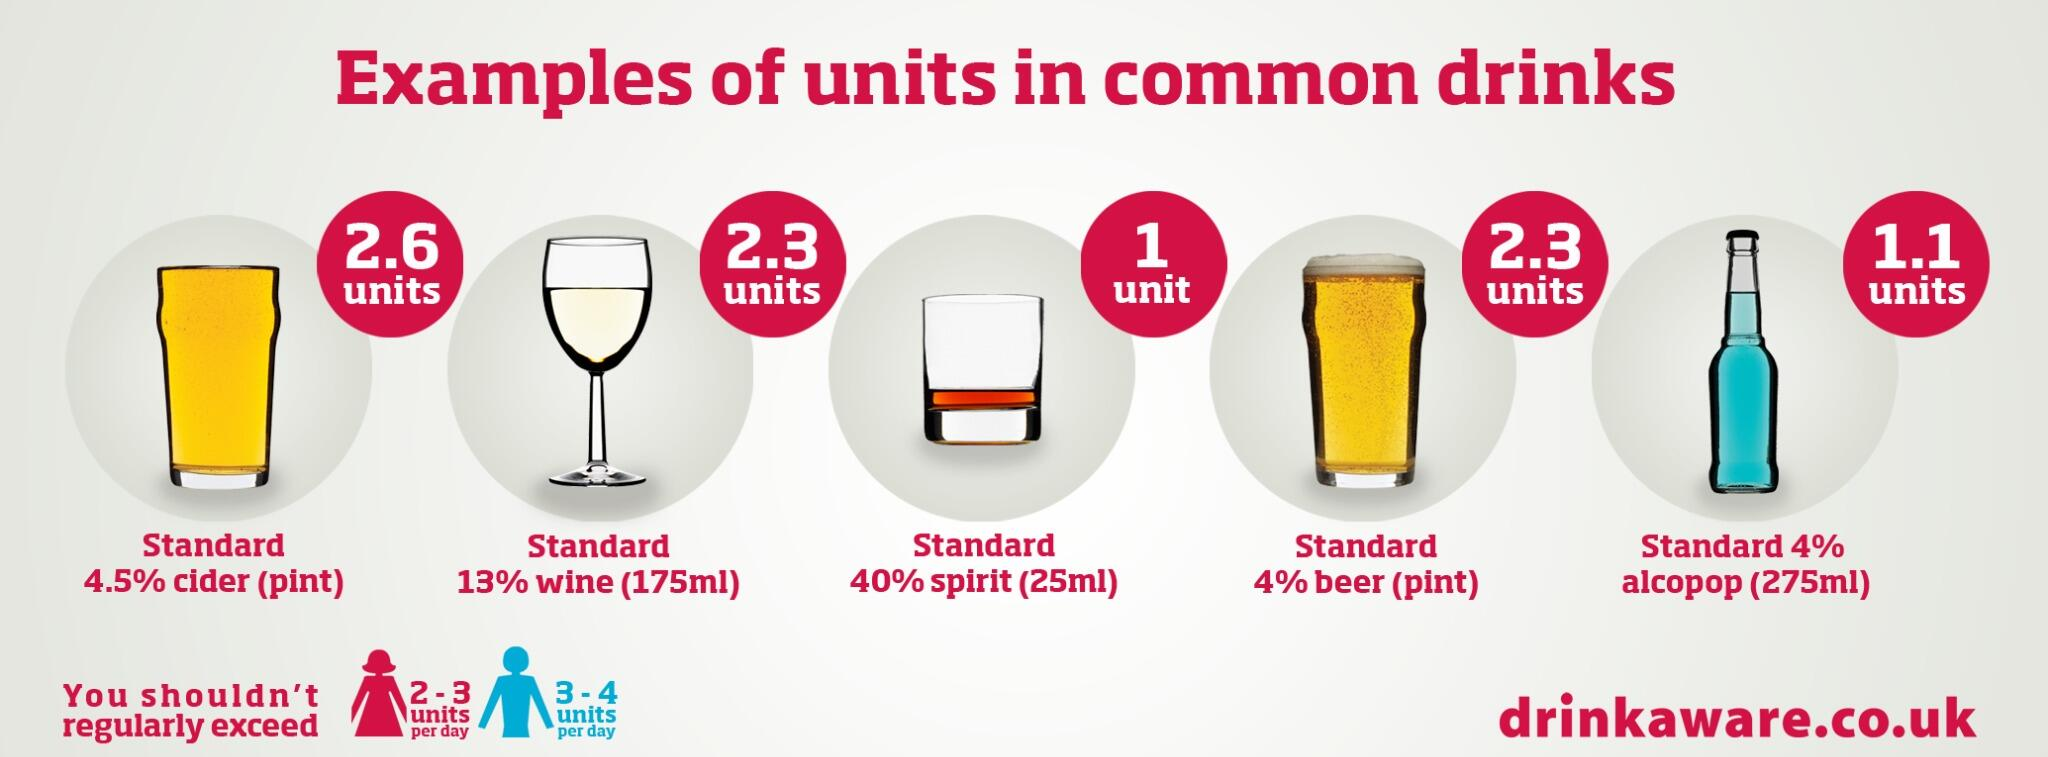 "Drinkaware On Twitter: ""How Many Units Are In Your"